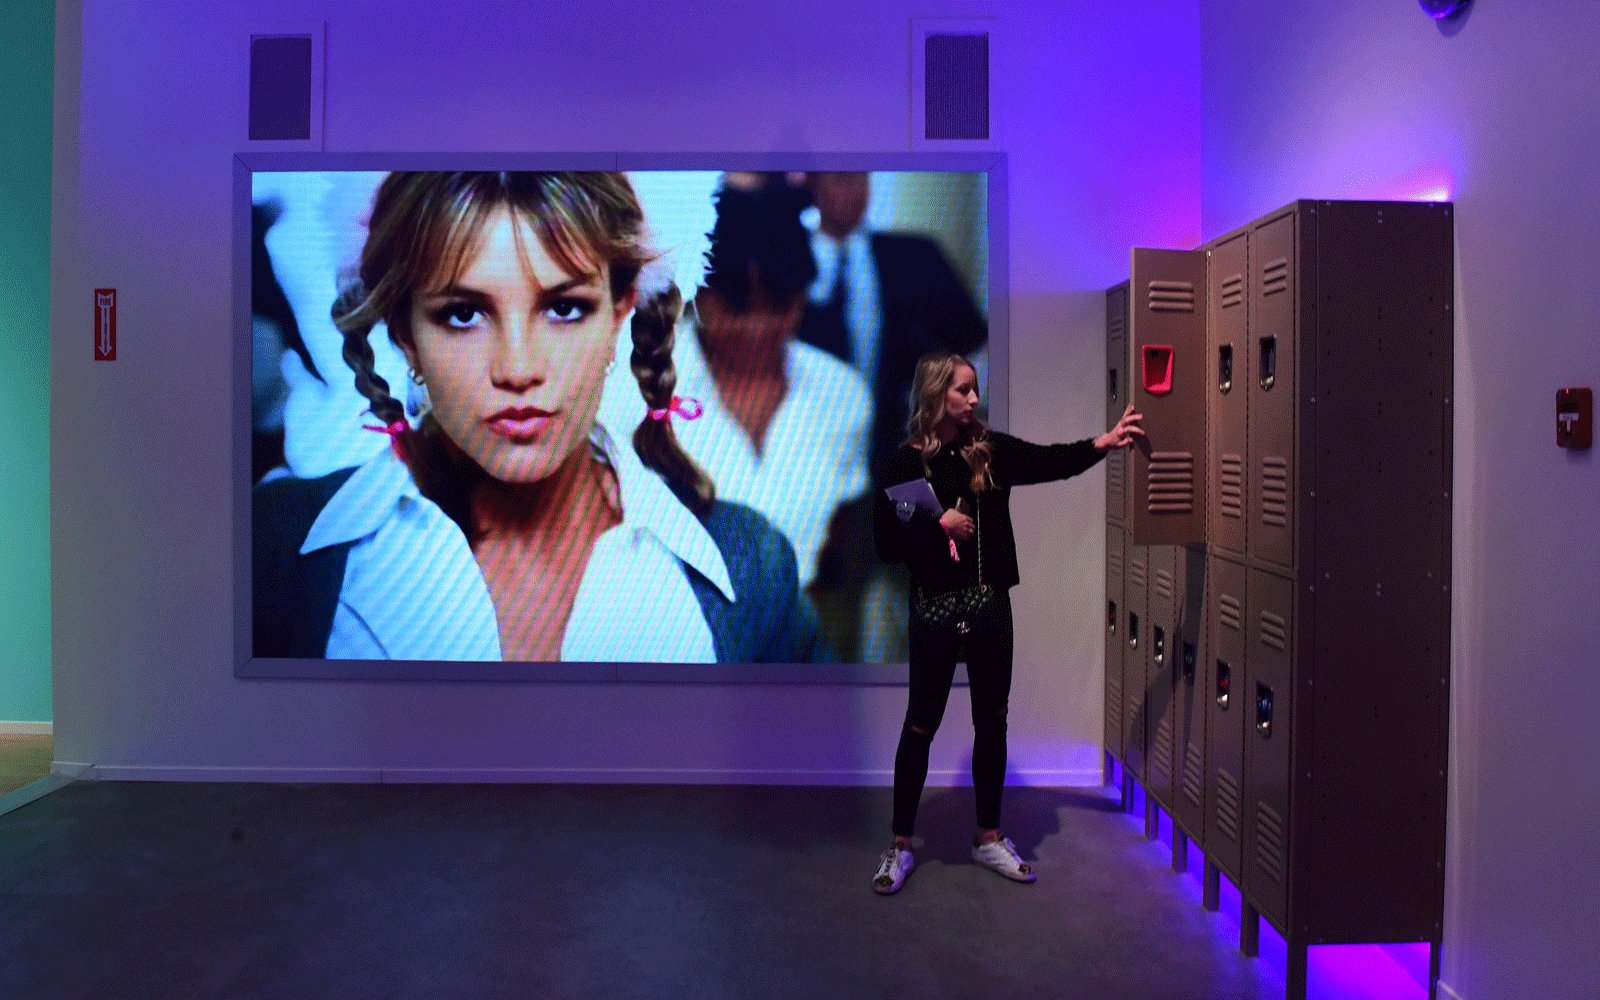 Britney Spears' Exhibit  The Zone